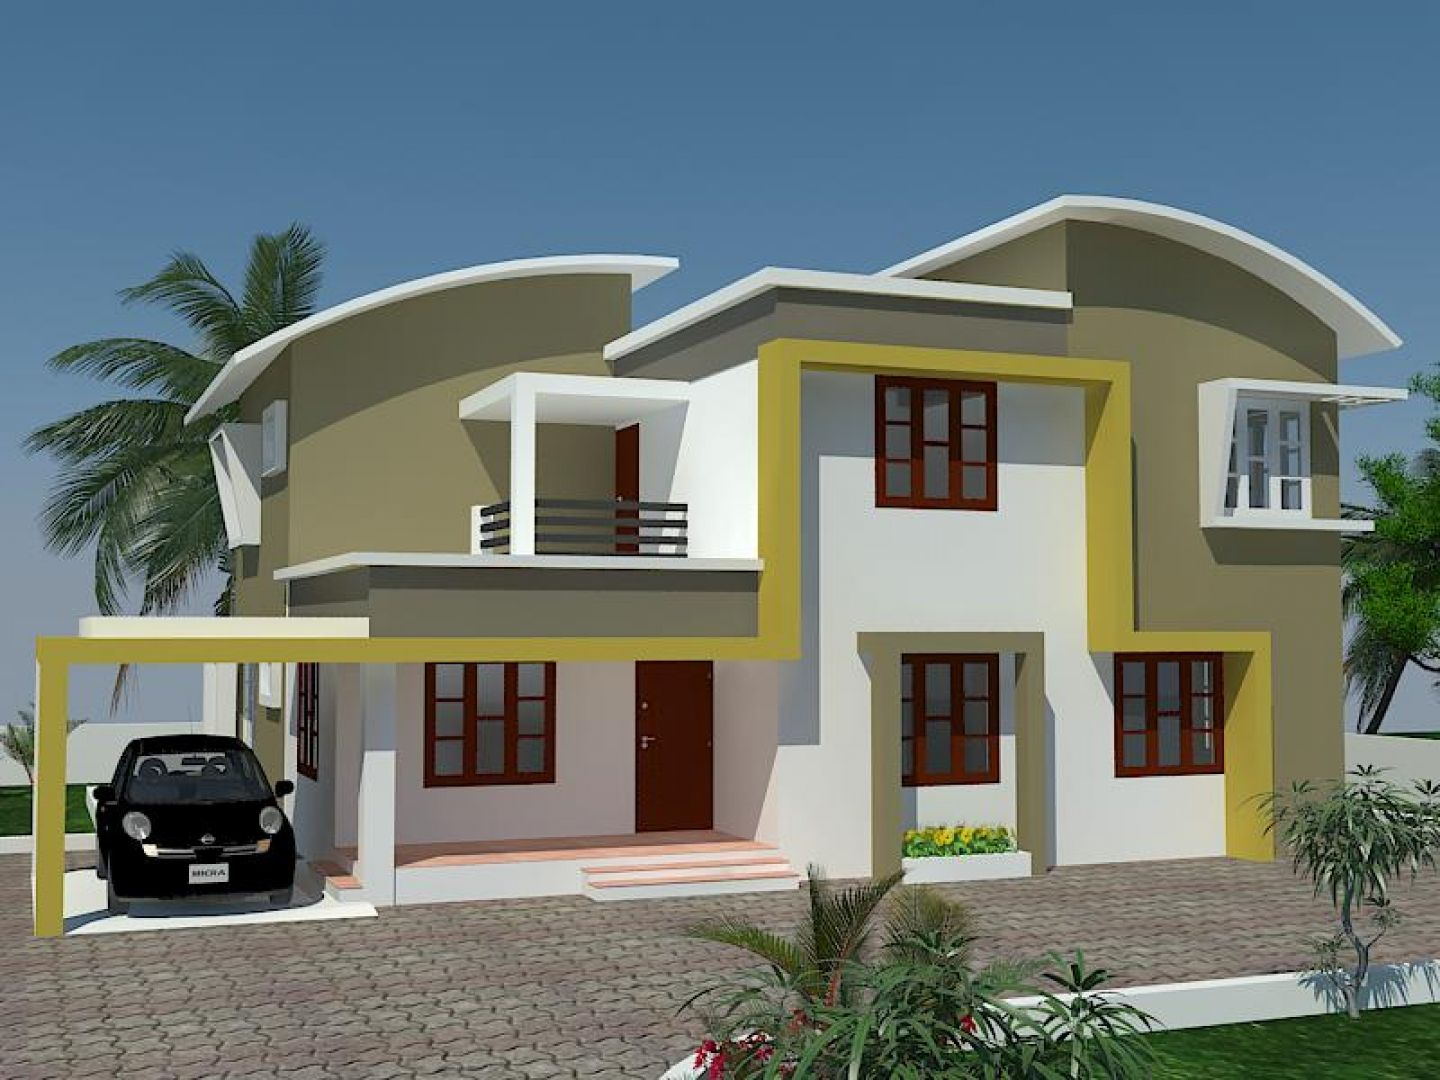 House design outer - Kerala Exterior Painting Kerala Home Home Design House House Designs Exteriorhousepaint More